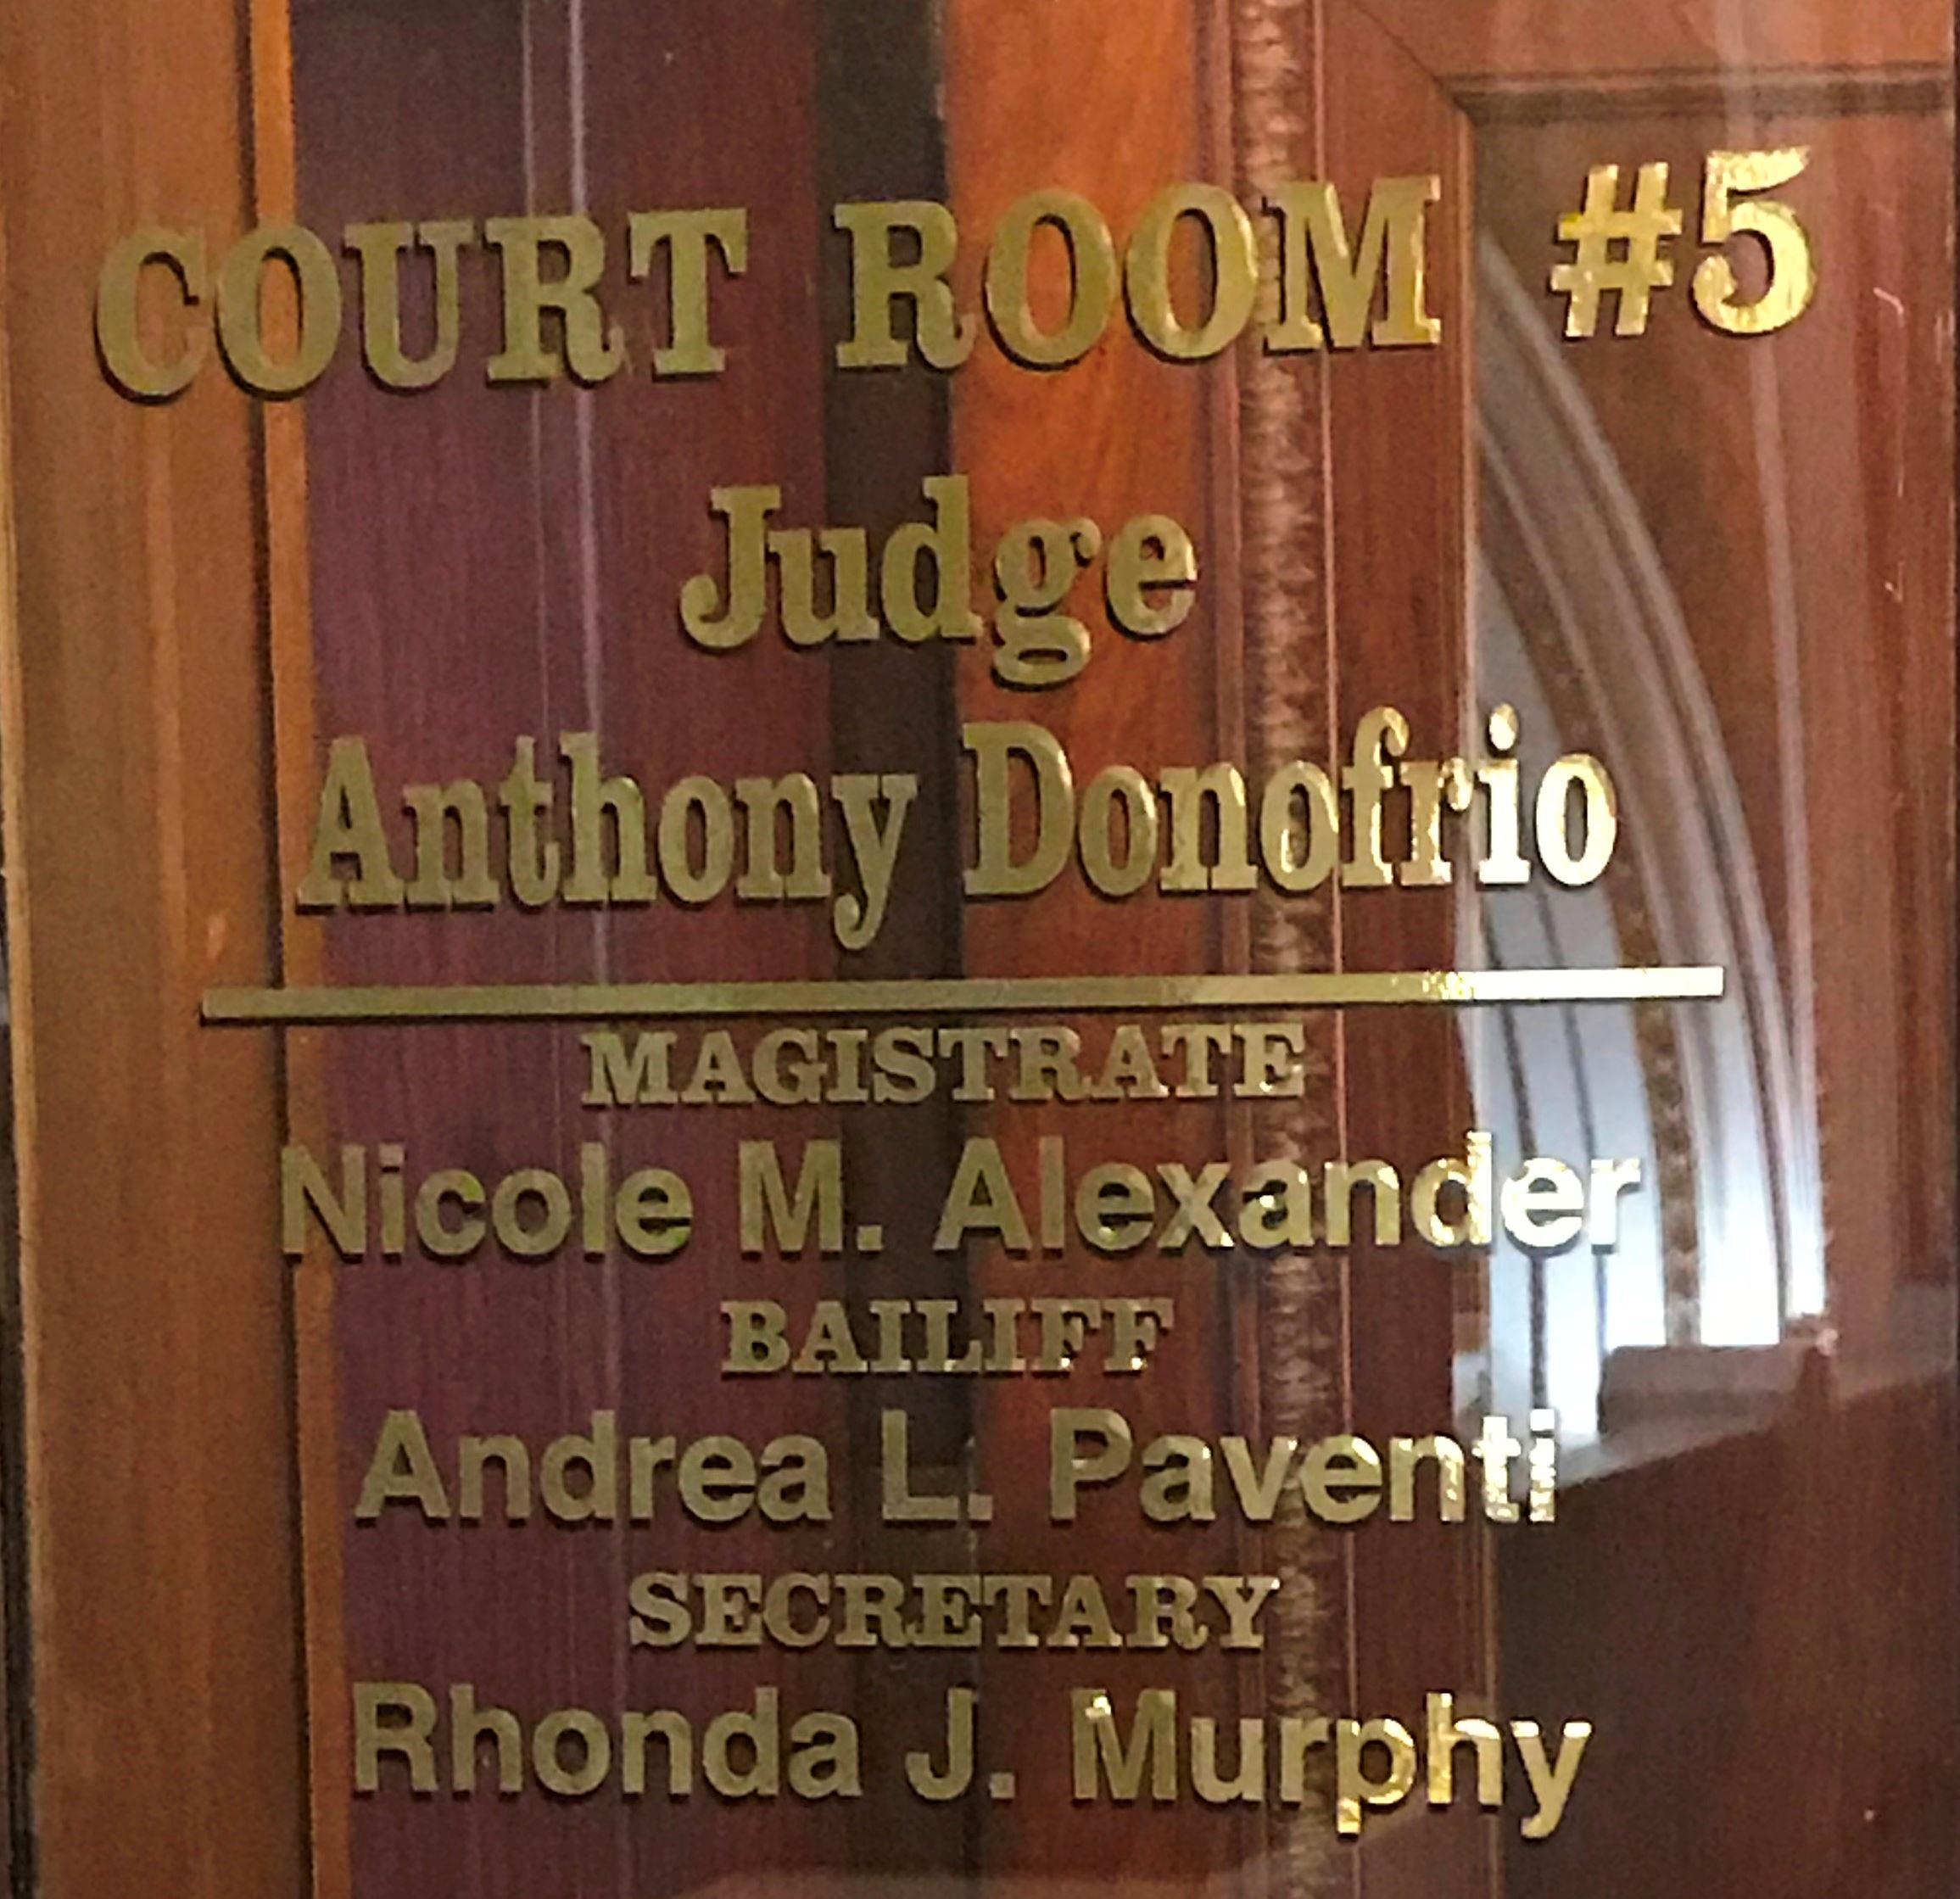 judge anthony donofrio door